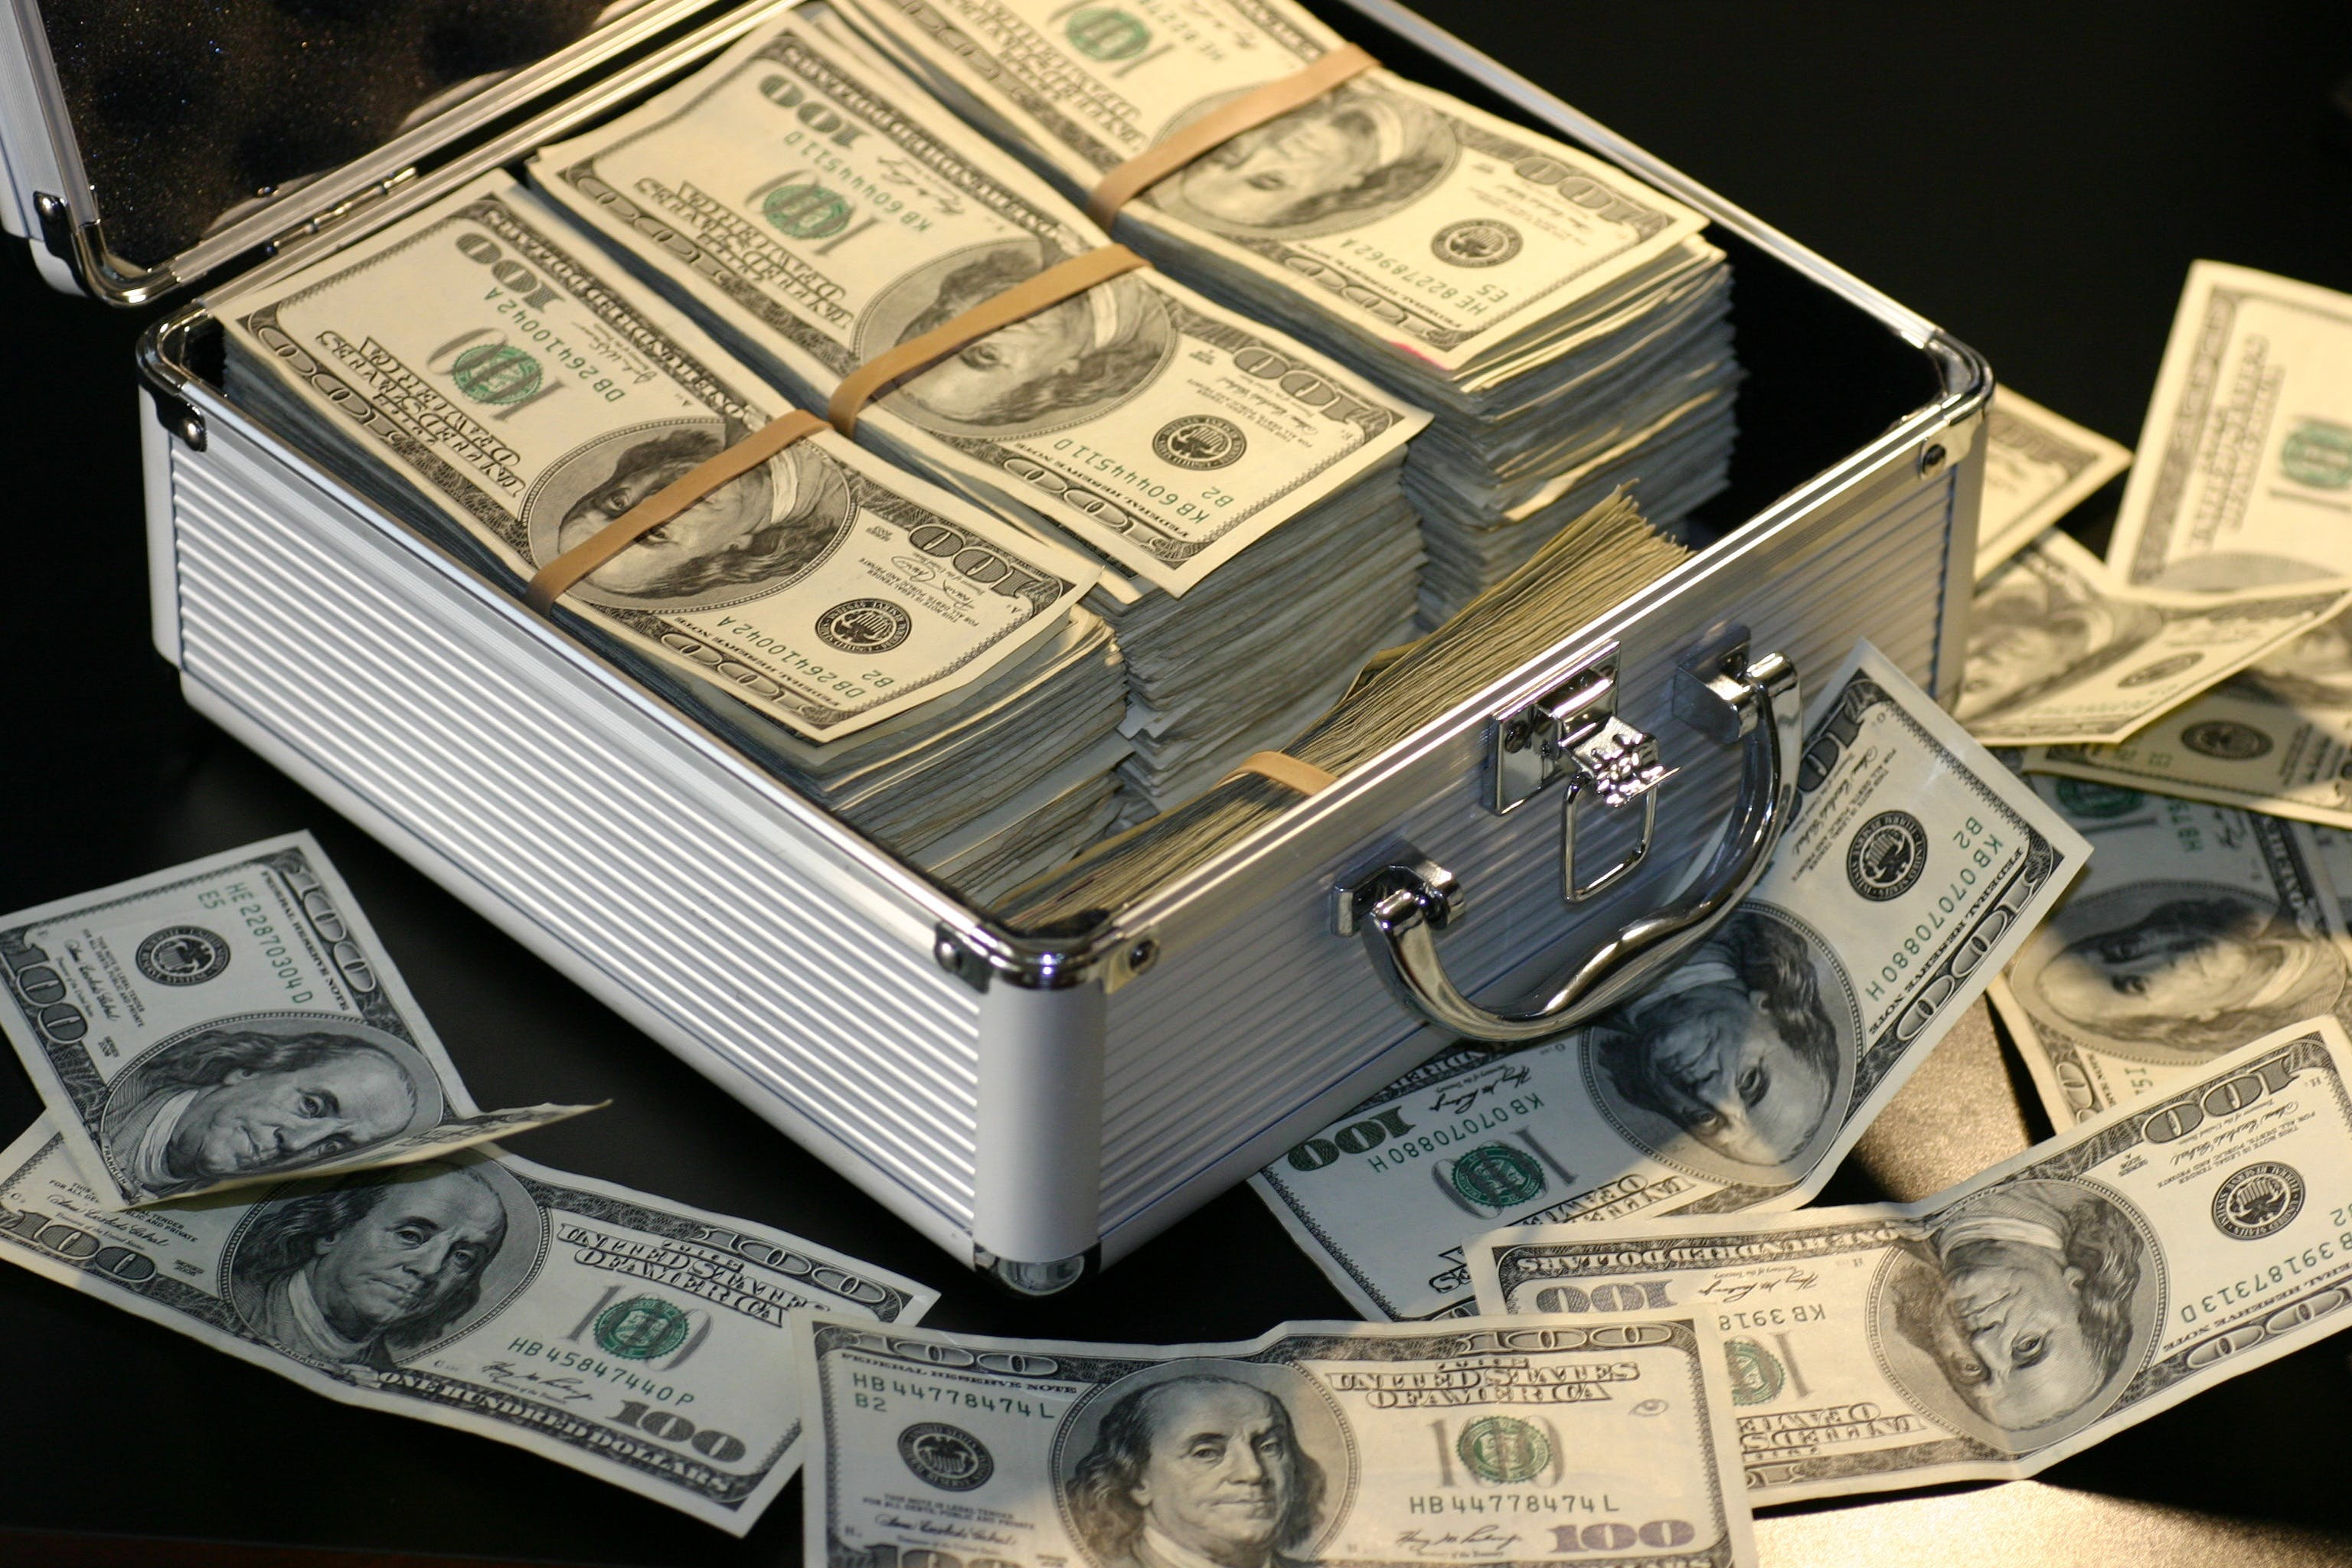 Grey Metal Case of Hundred Dollar Bills